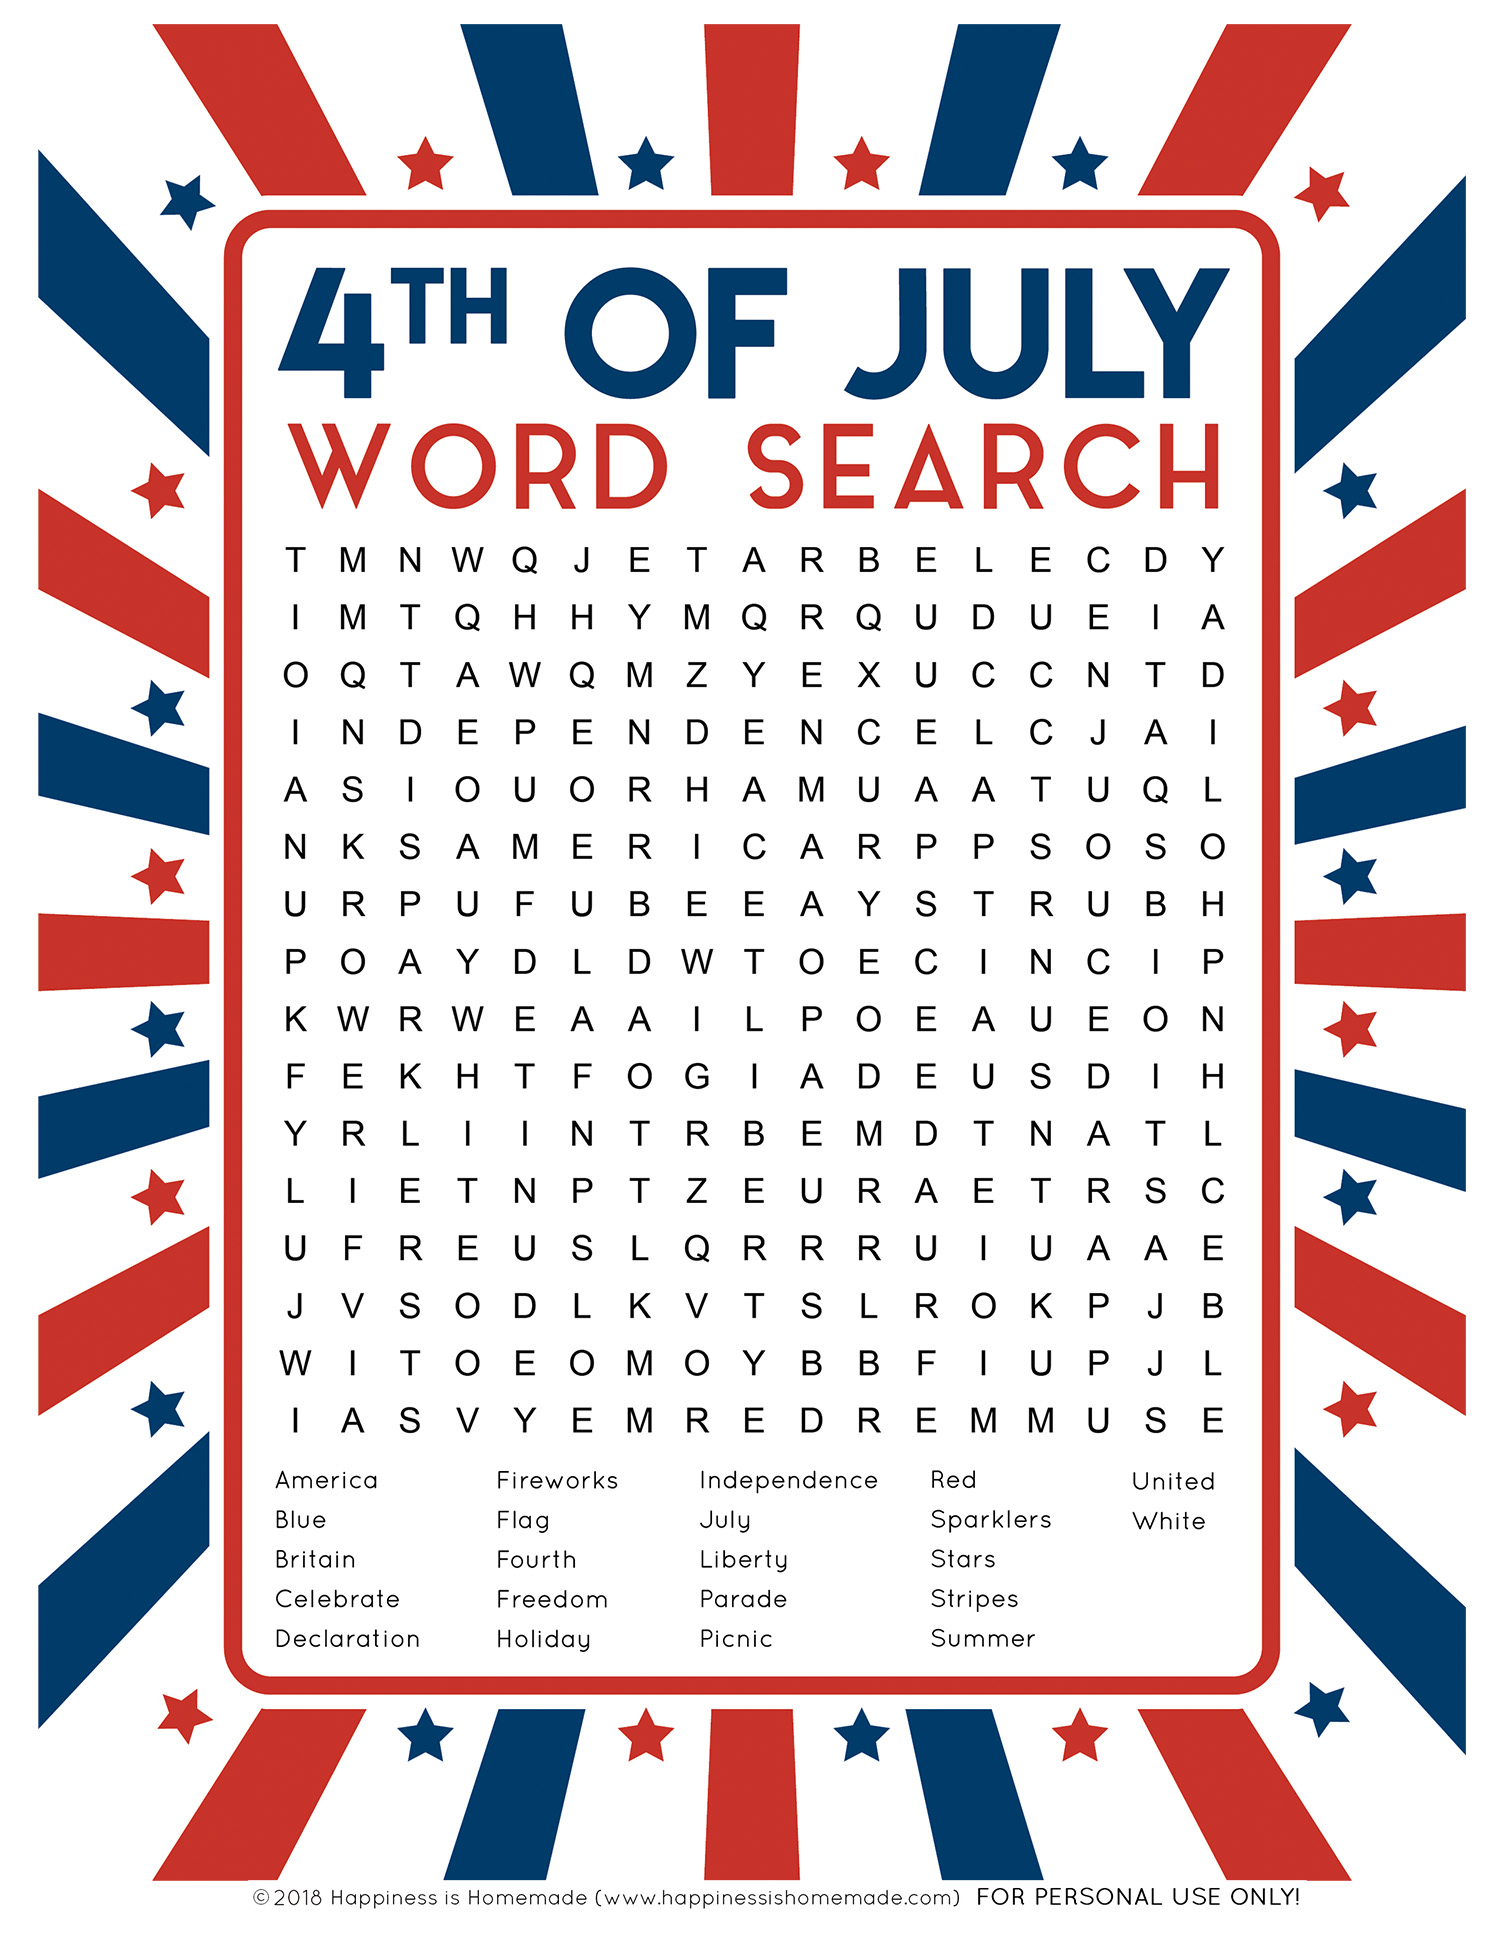 4th Of July Word Search Printable